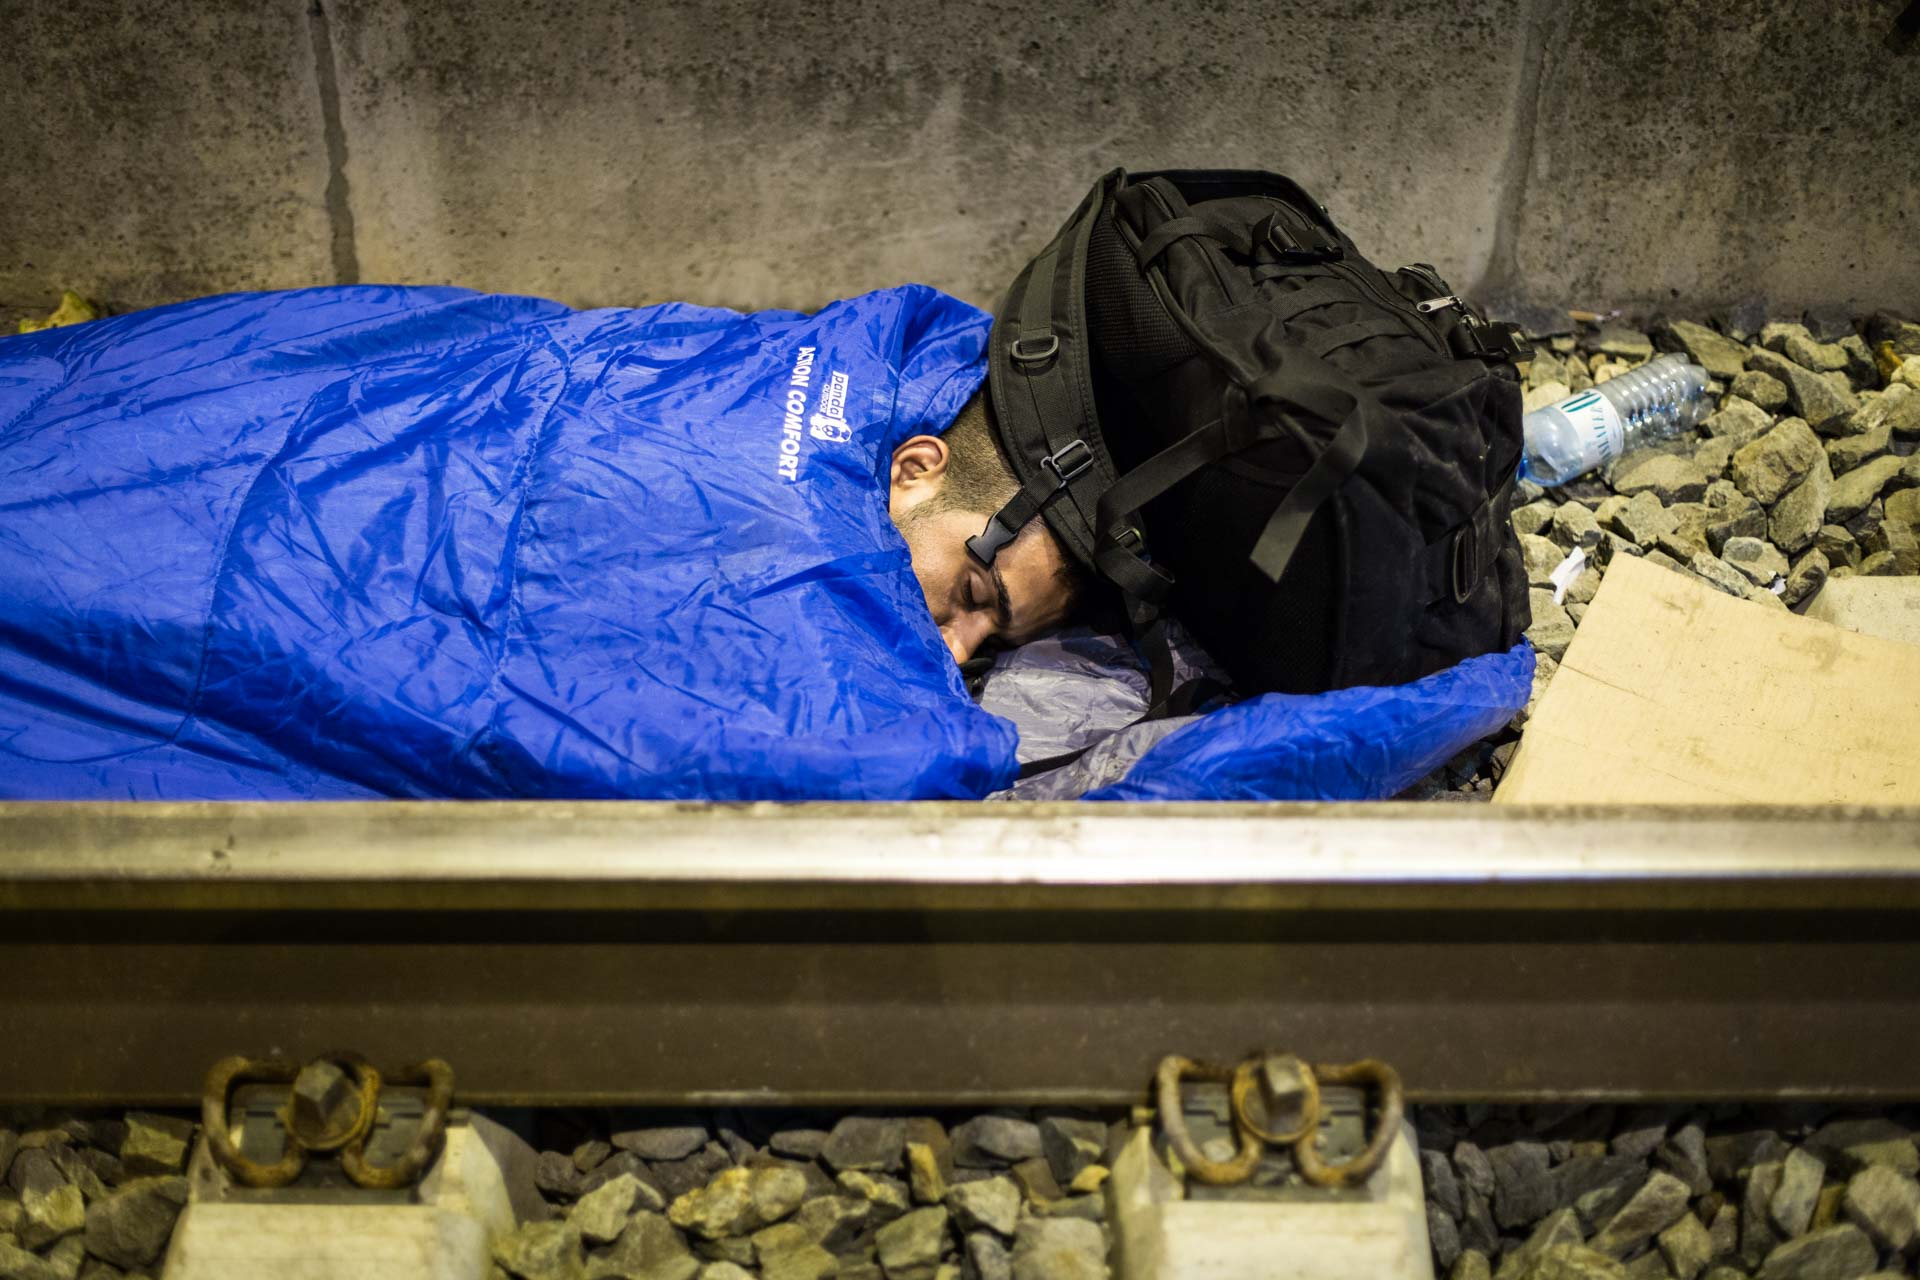 A man is spending the night next to a rail in front of the train station in Tovarnik, Croatia, waiting for a train to Slovenia.